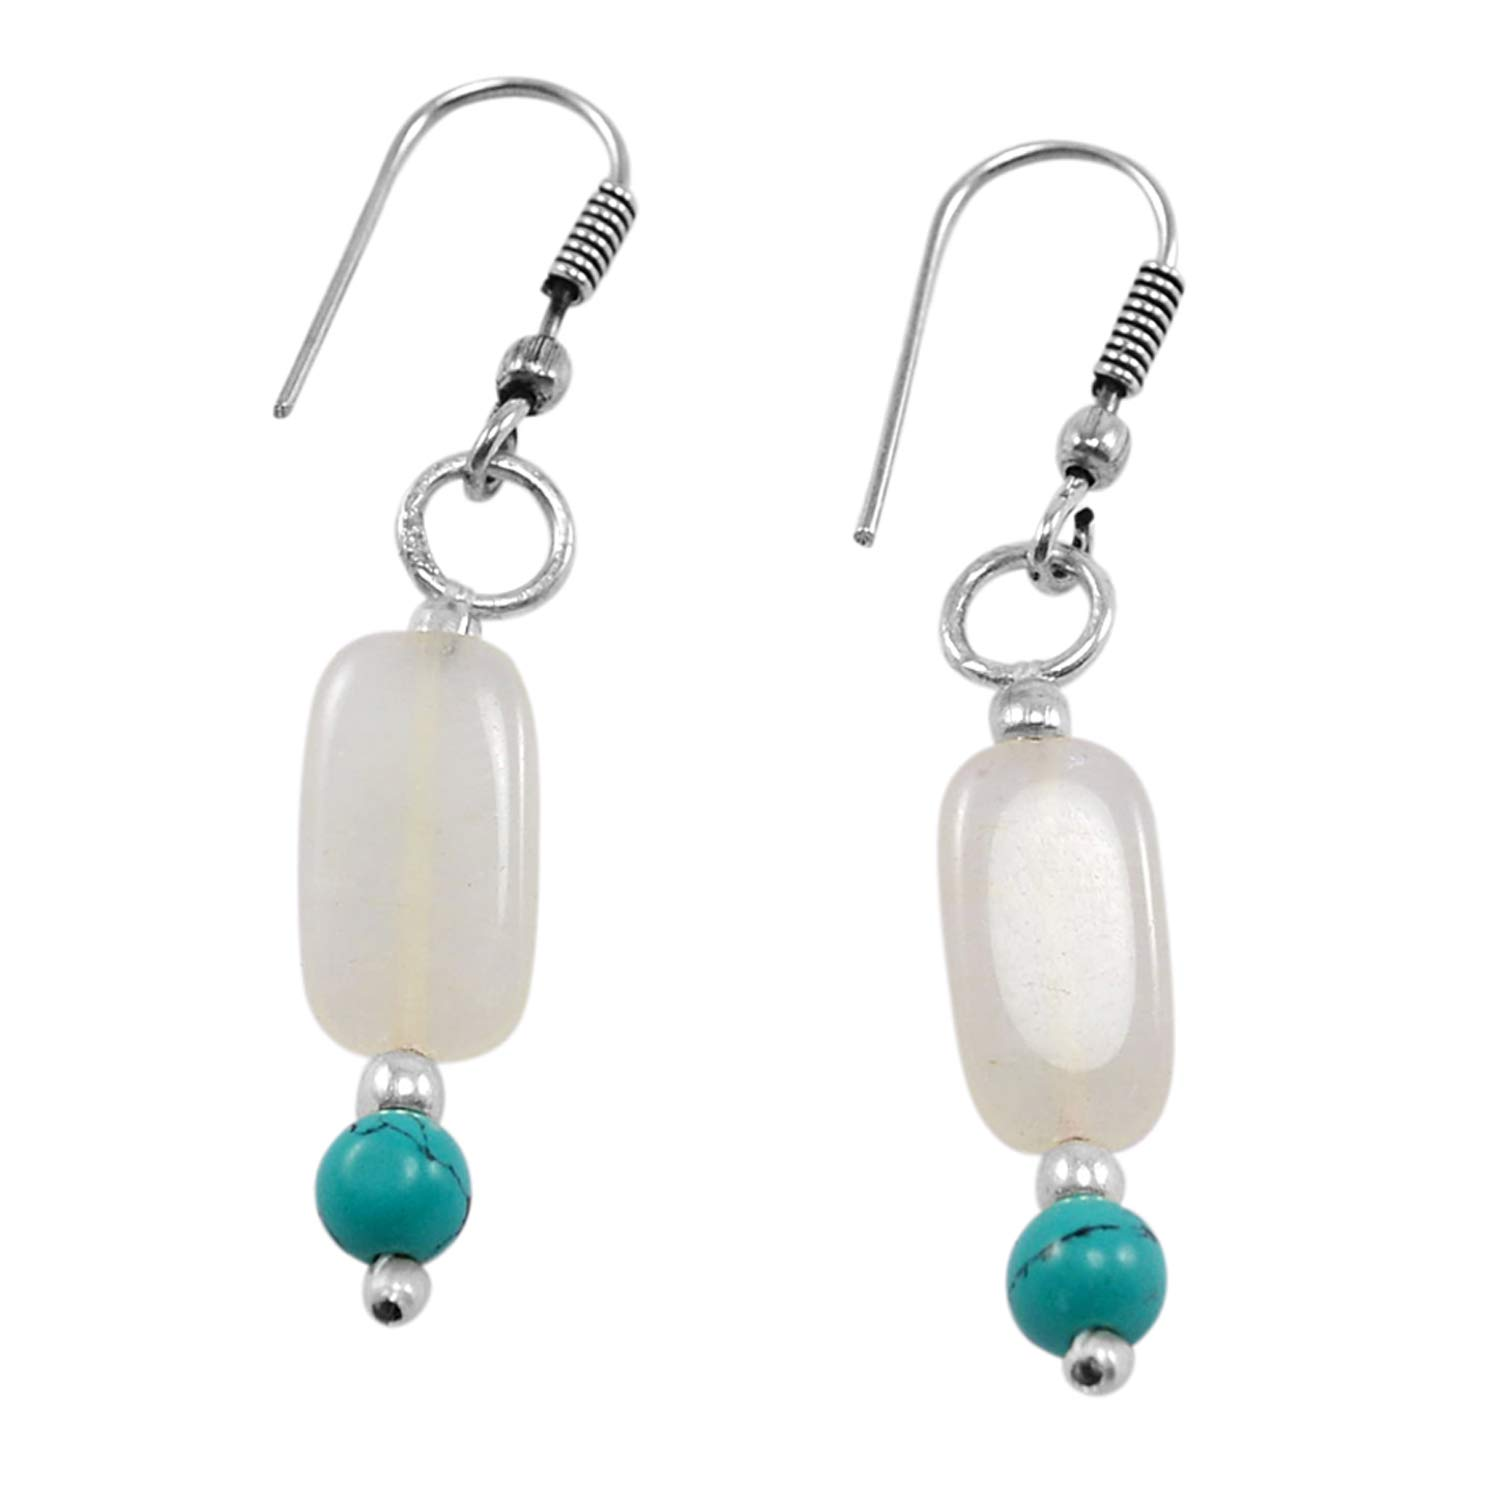 Saamarth Impex Turquoise /& White Quartz 925 Silver Plated Dangle Earring PG-130734